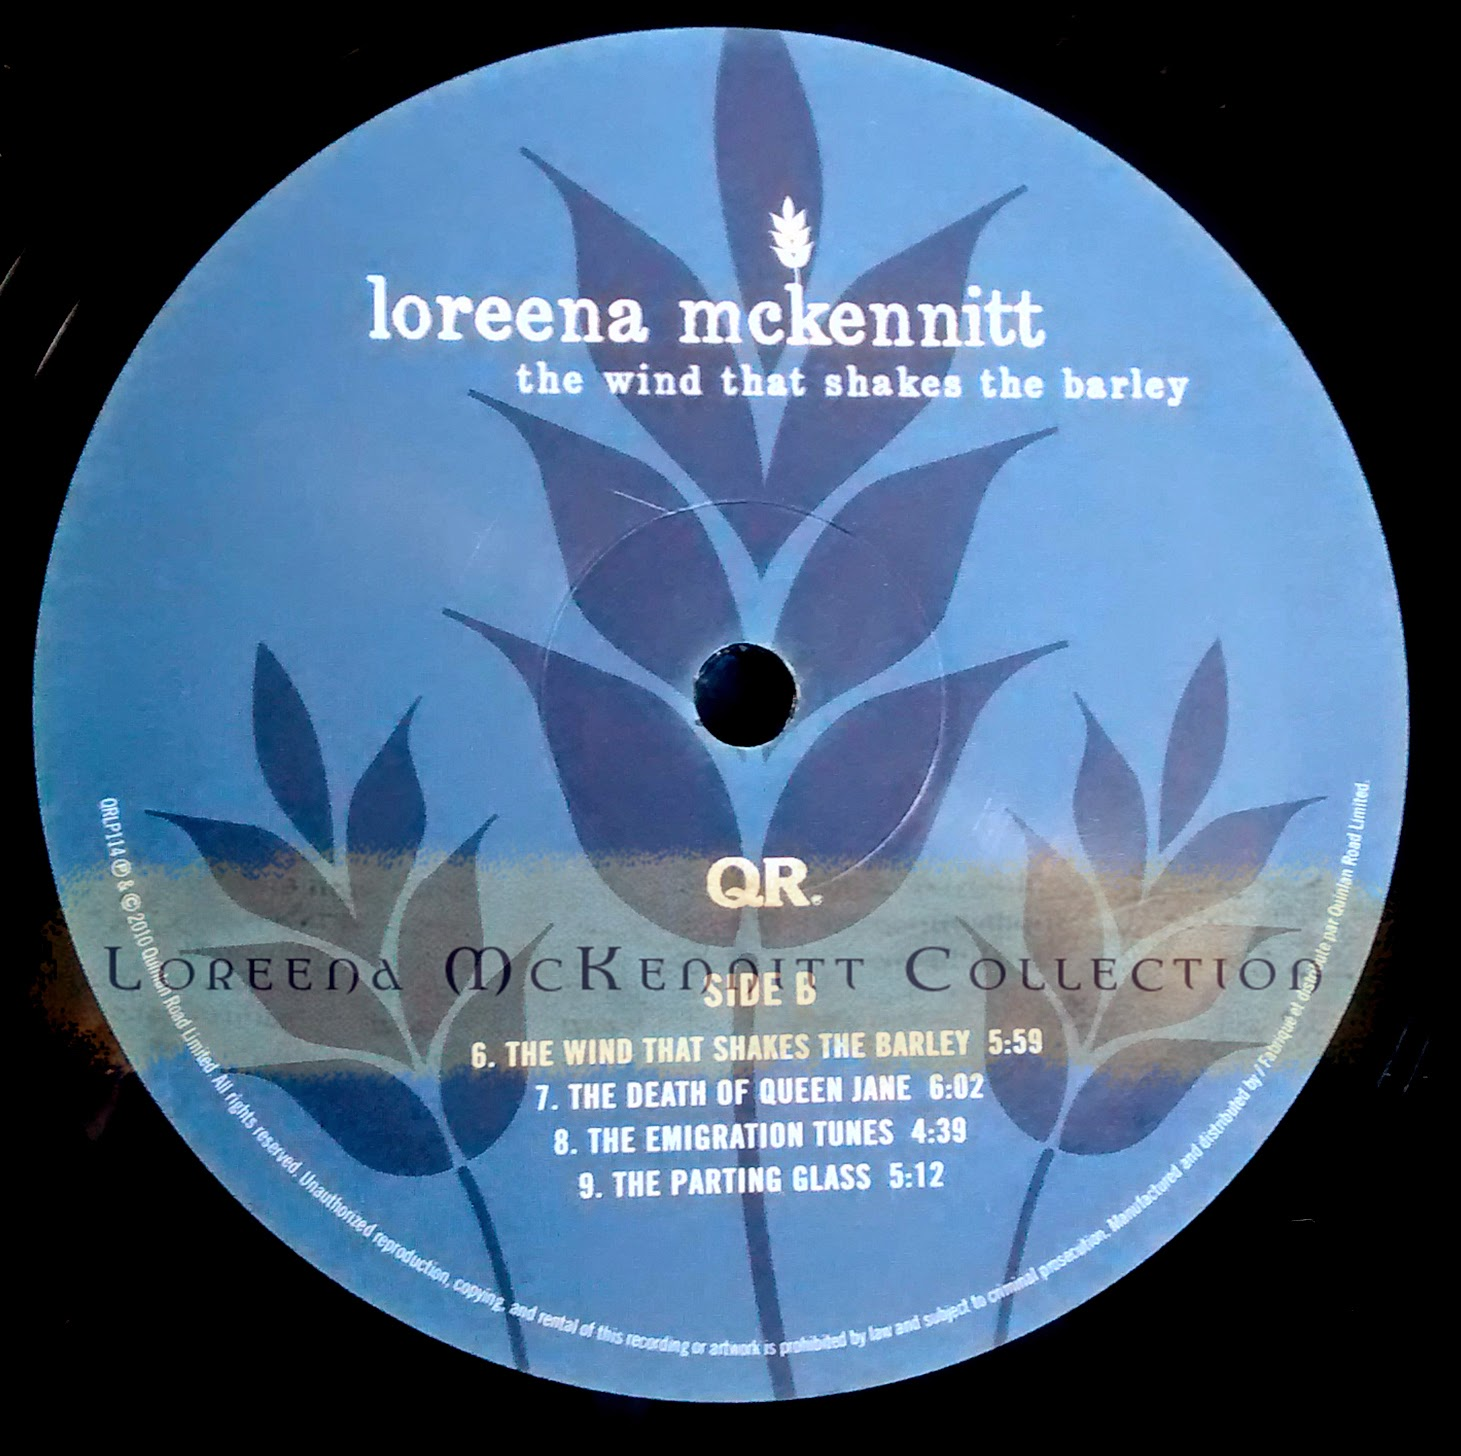 loreena mckennitt collection 2010 the wind that shakes the